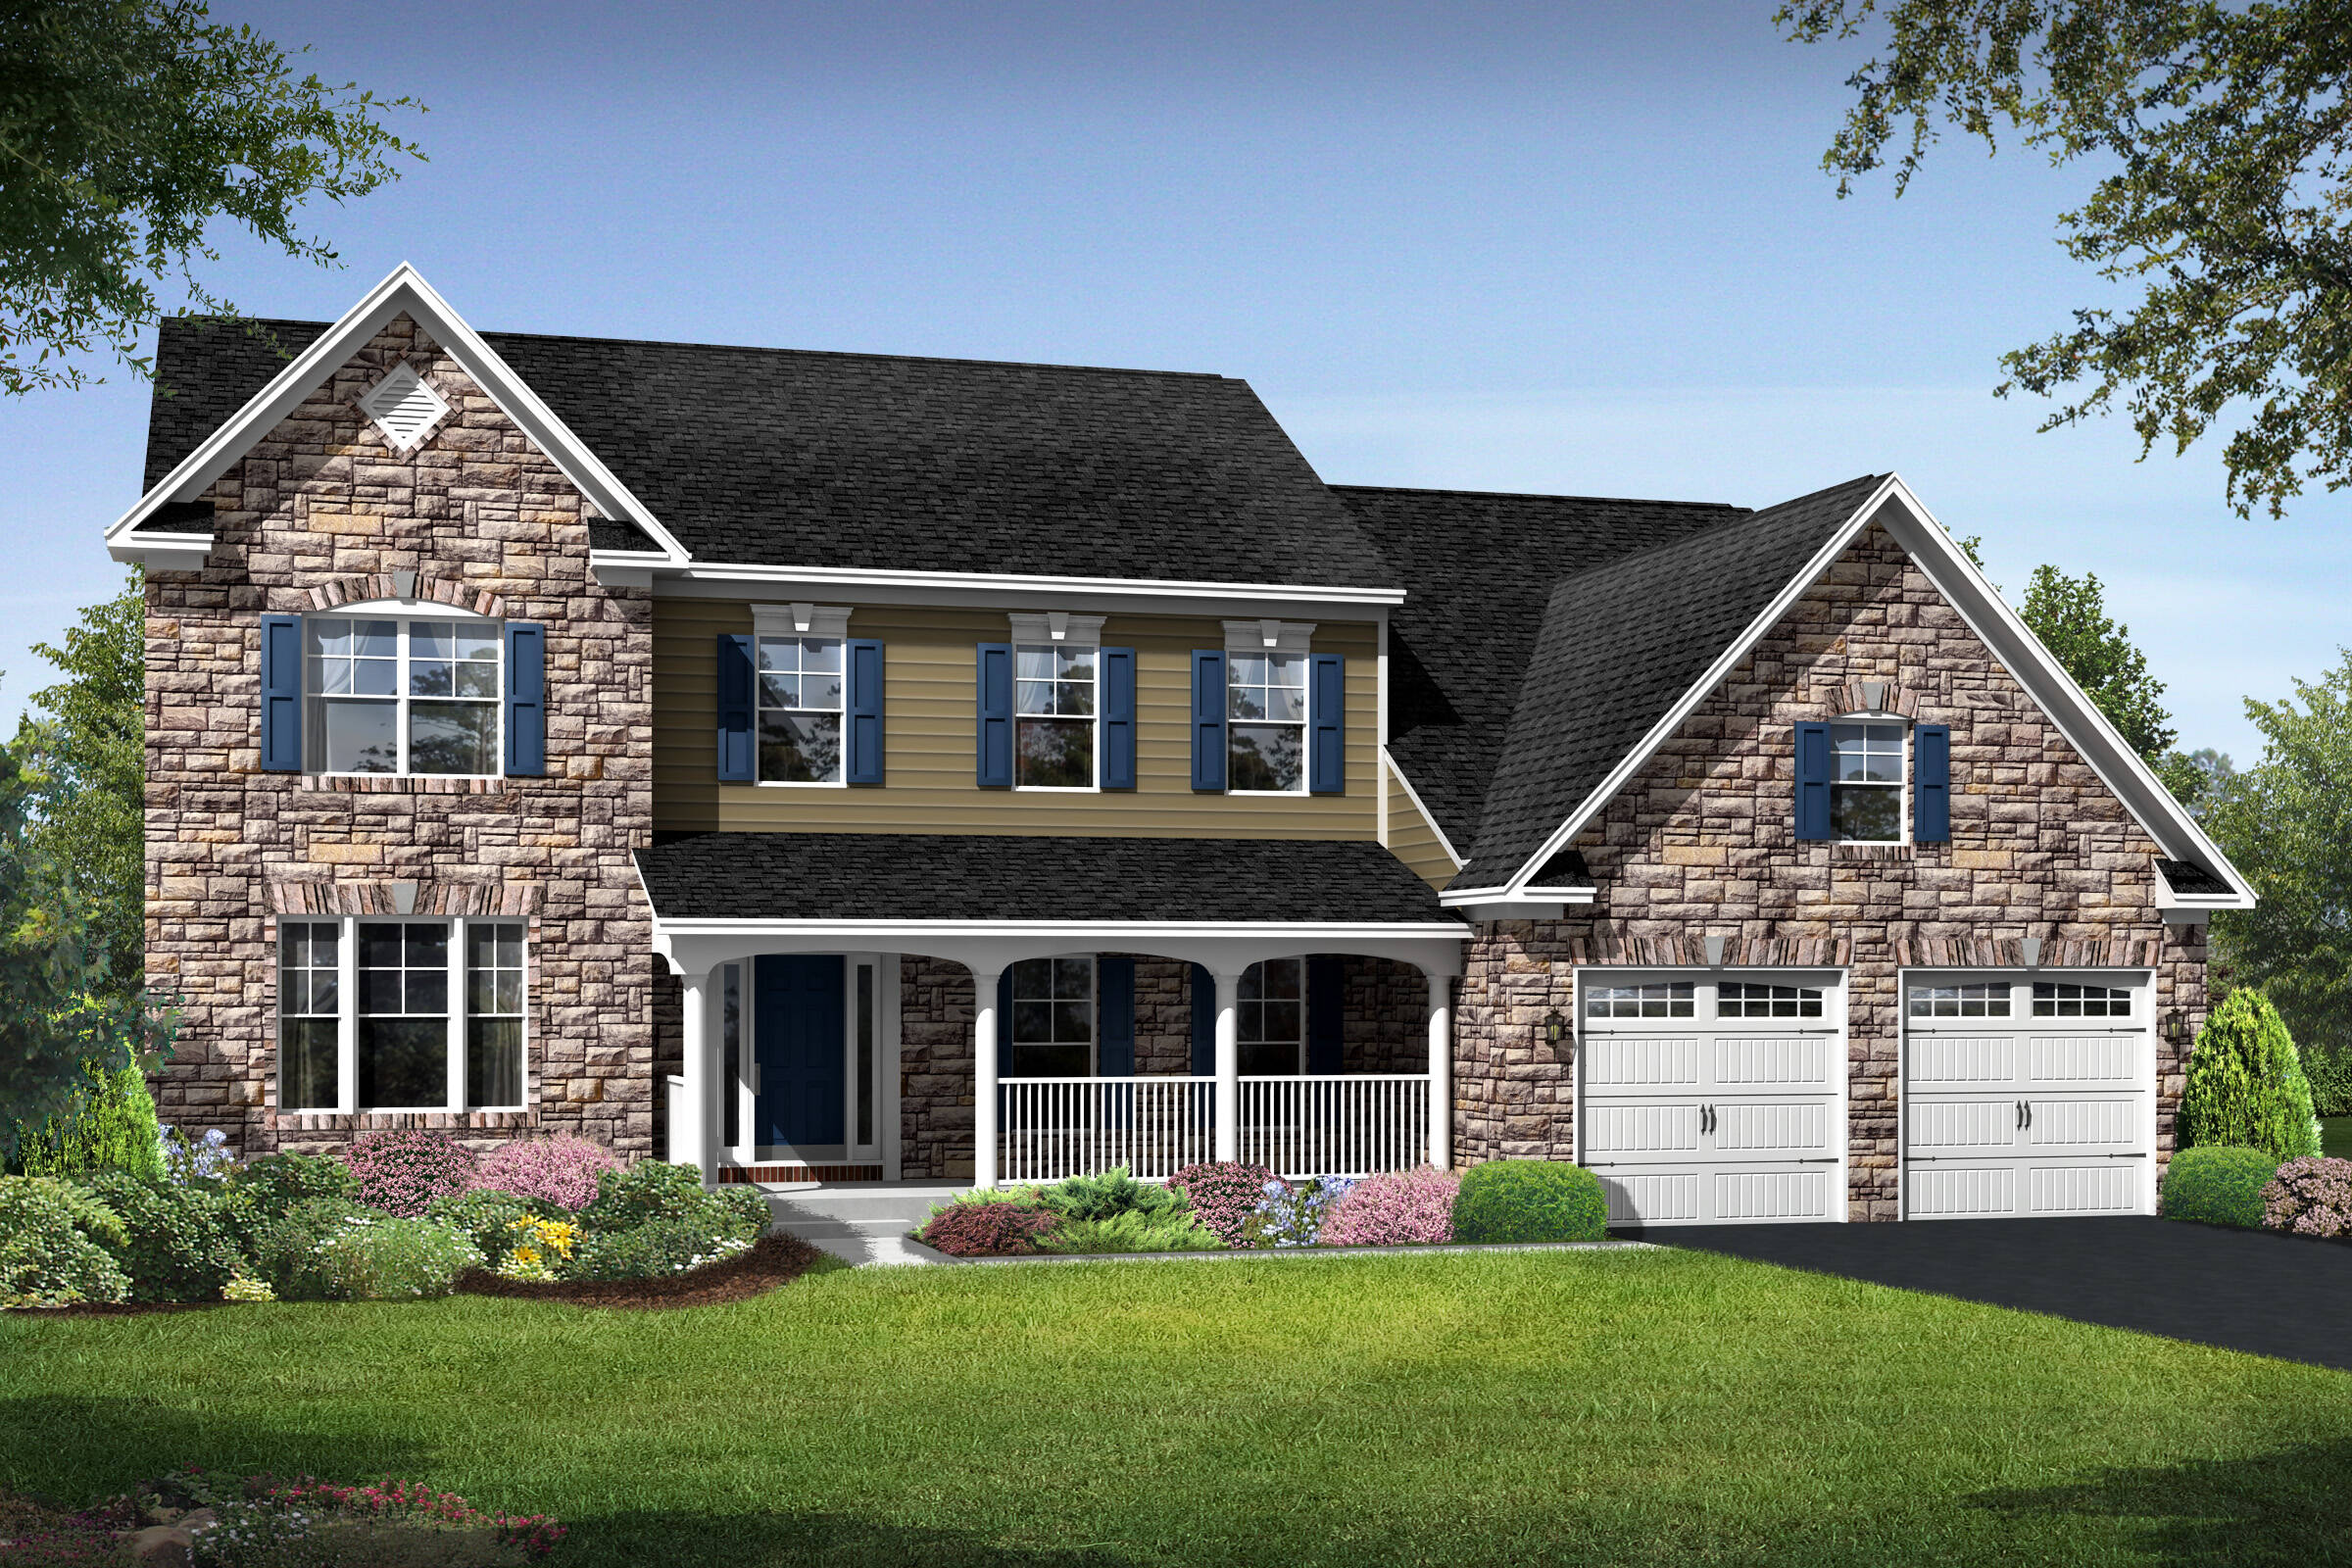 rhode island country new homes at magness farm in virginia